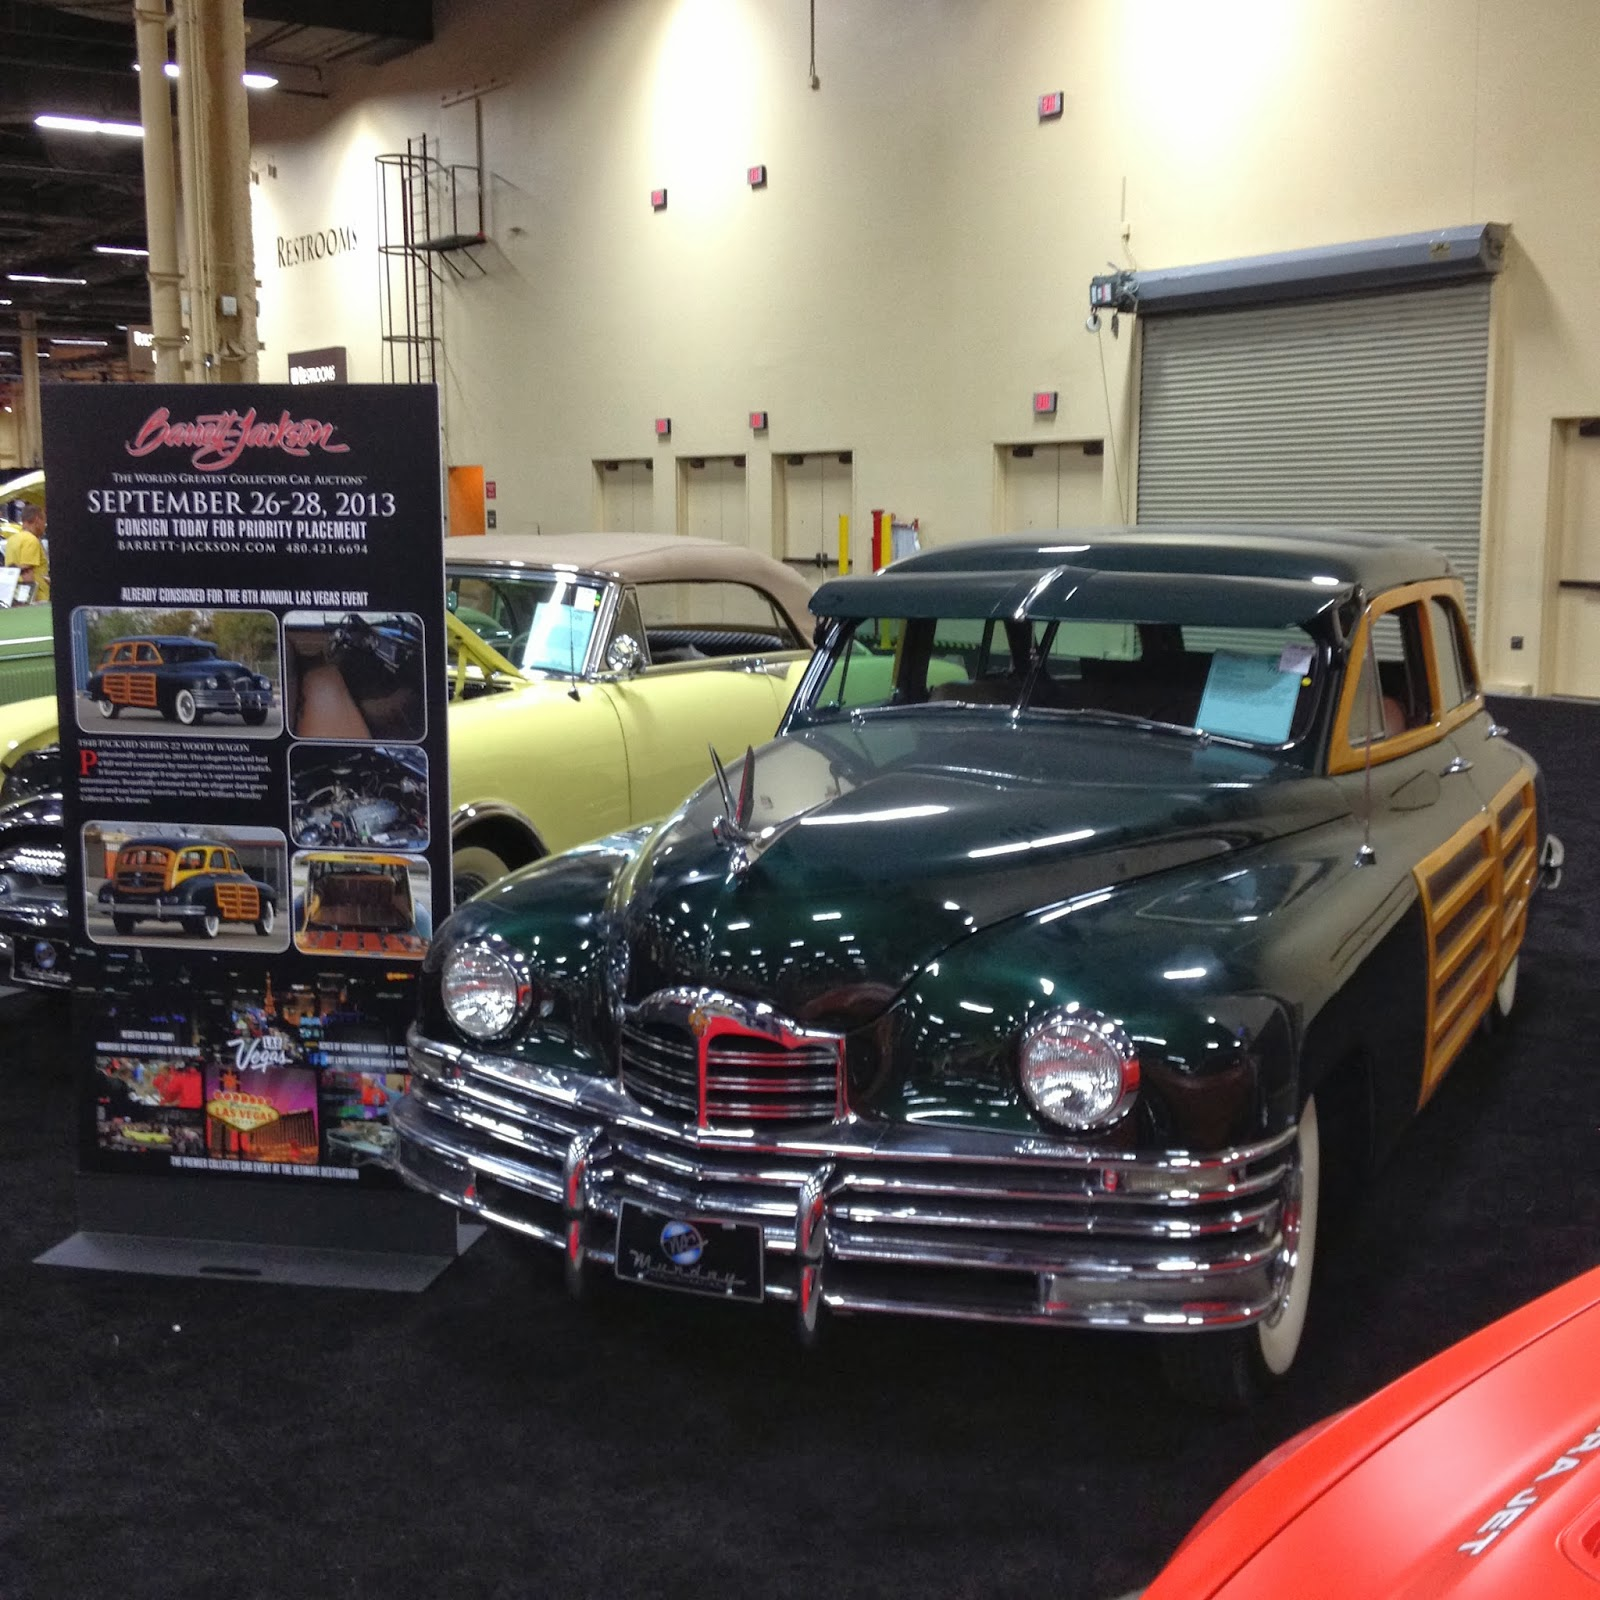 Covering Classic Cars : Up For Sale at Barrett-Jackson Las Vegas 2013